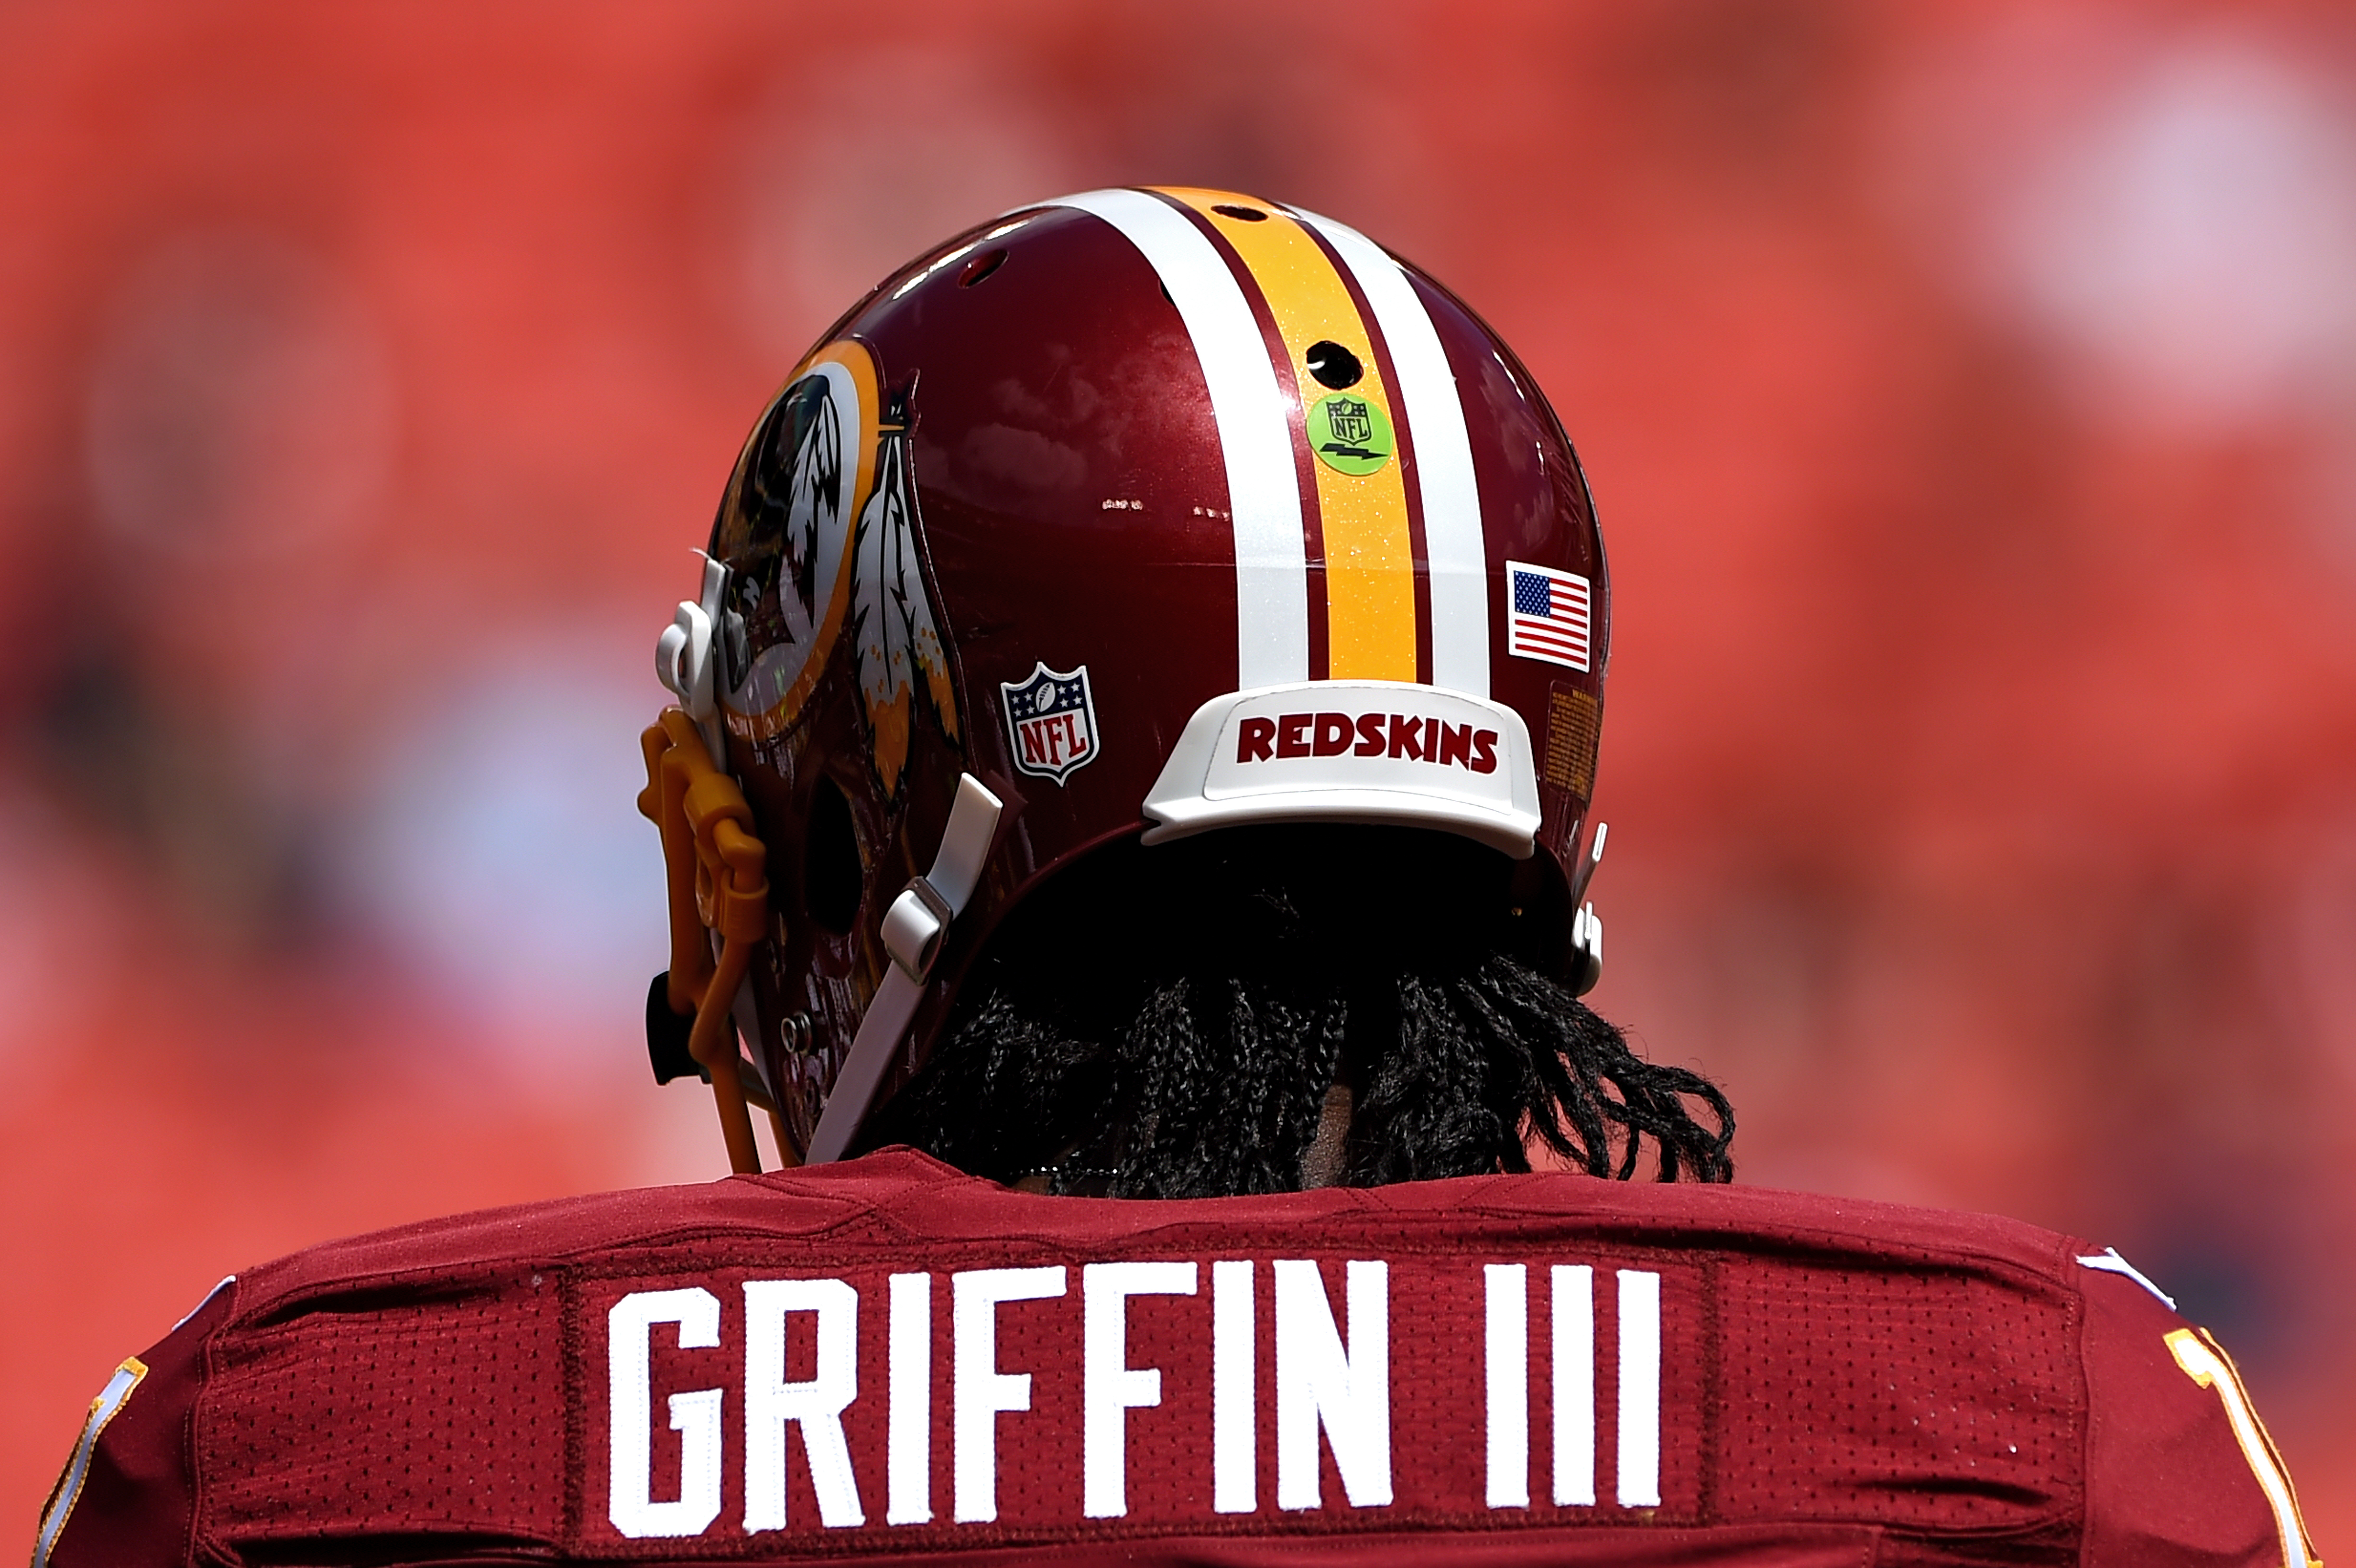 Redskins to keep RG3 on 53-man roster